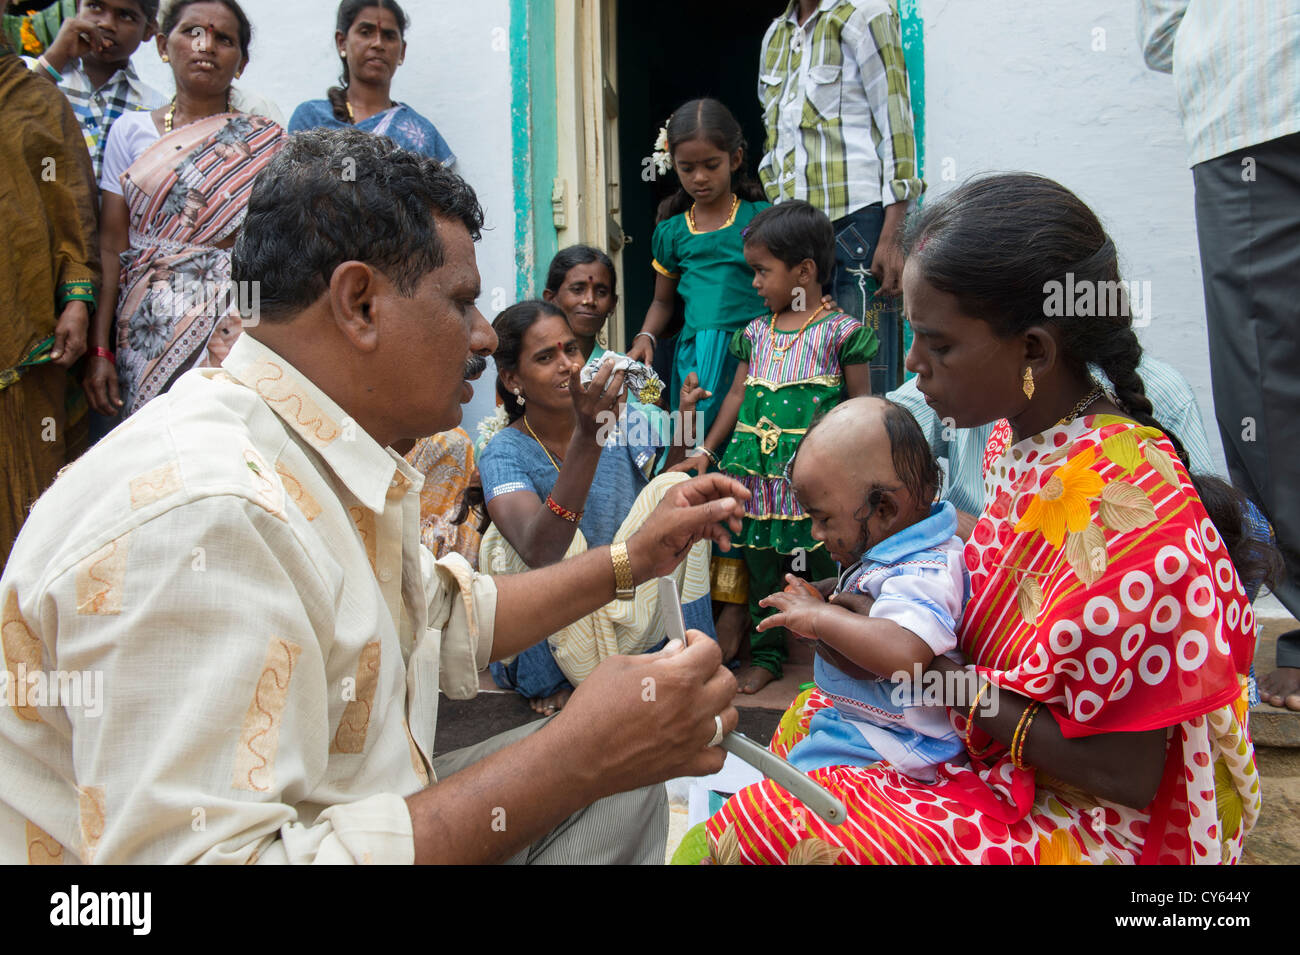 indian baby hair cutting ritual puja in a rural indian